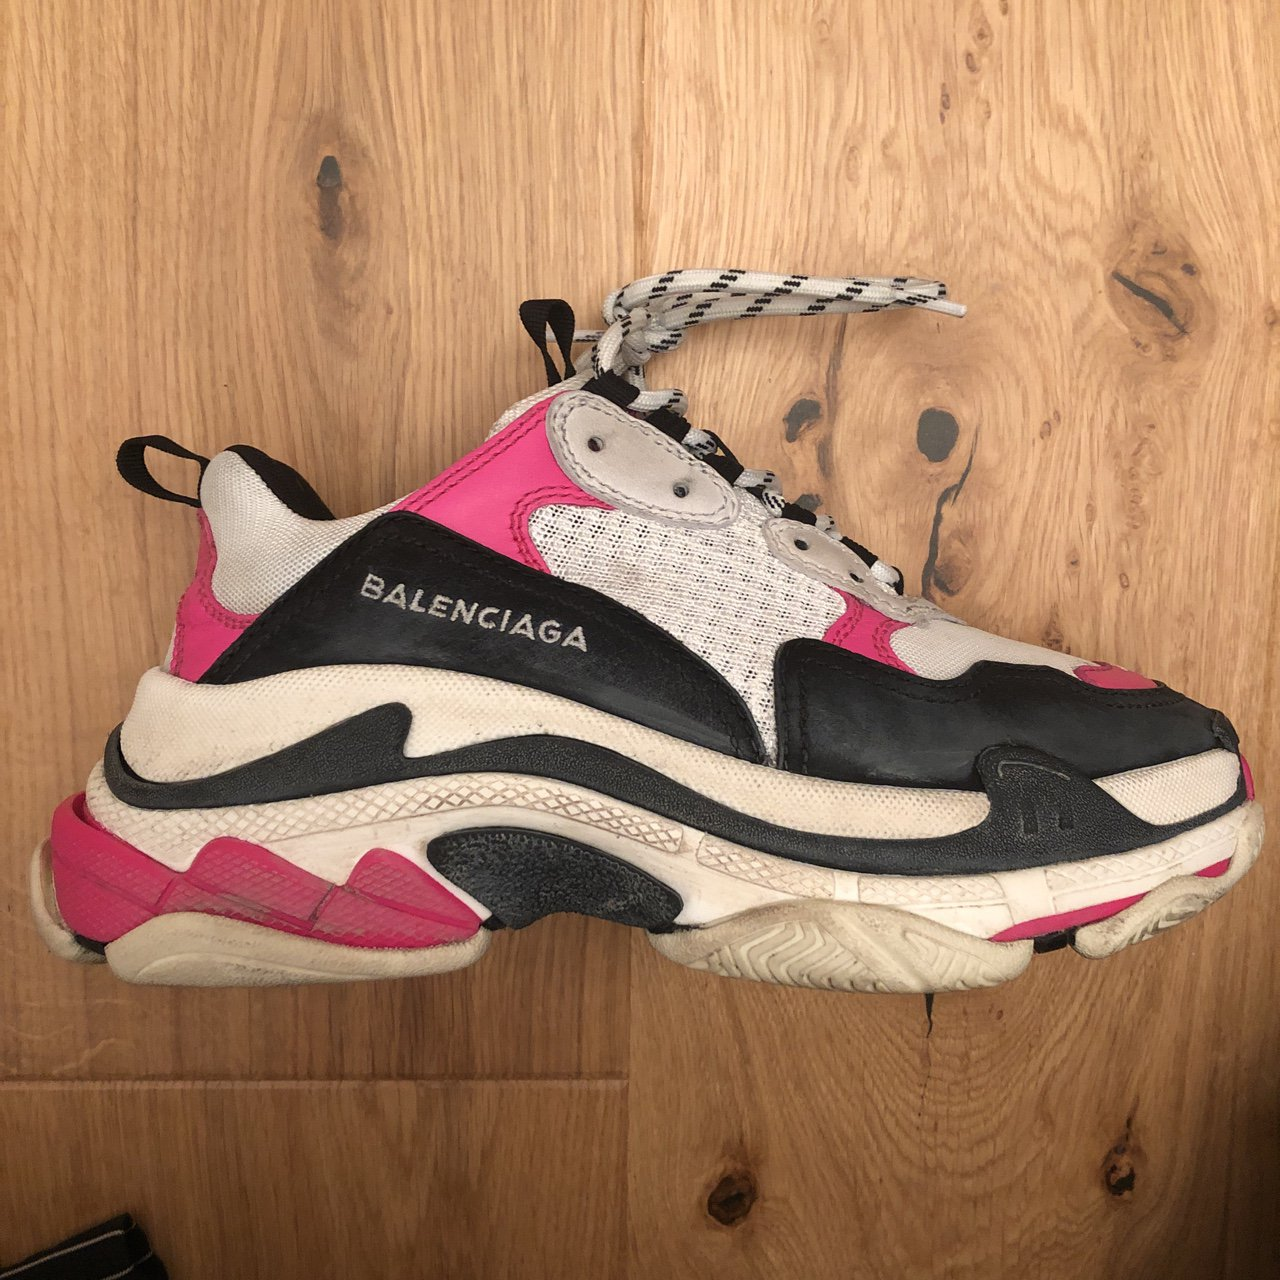 ad45cc5582e5 Balenciaga Triple S women s shoes (size 37) pink white and . - Depop